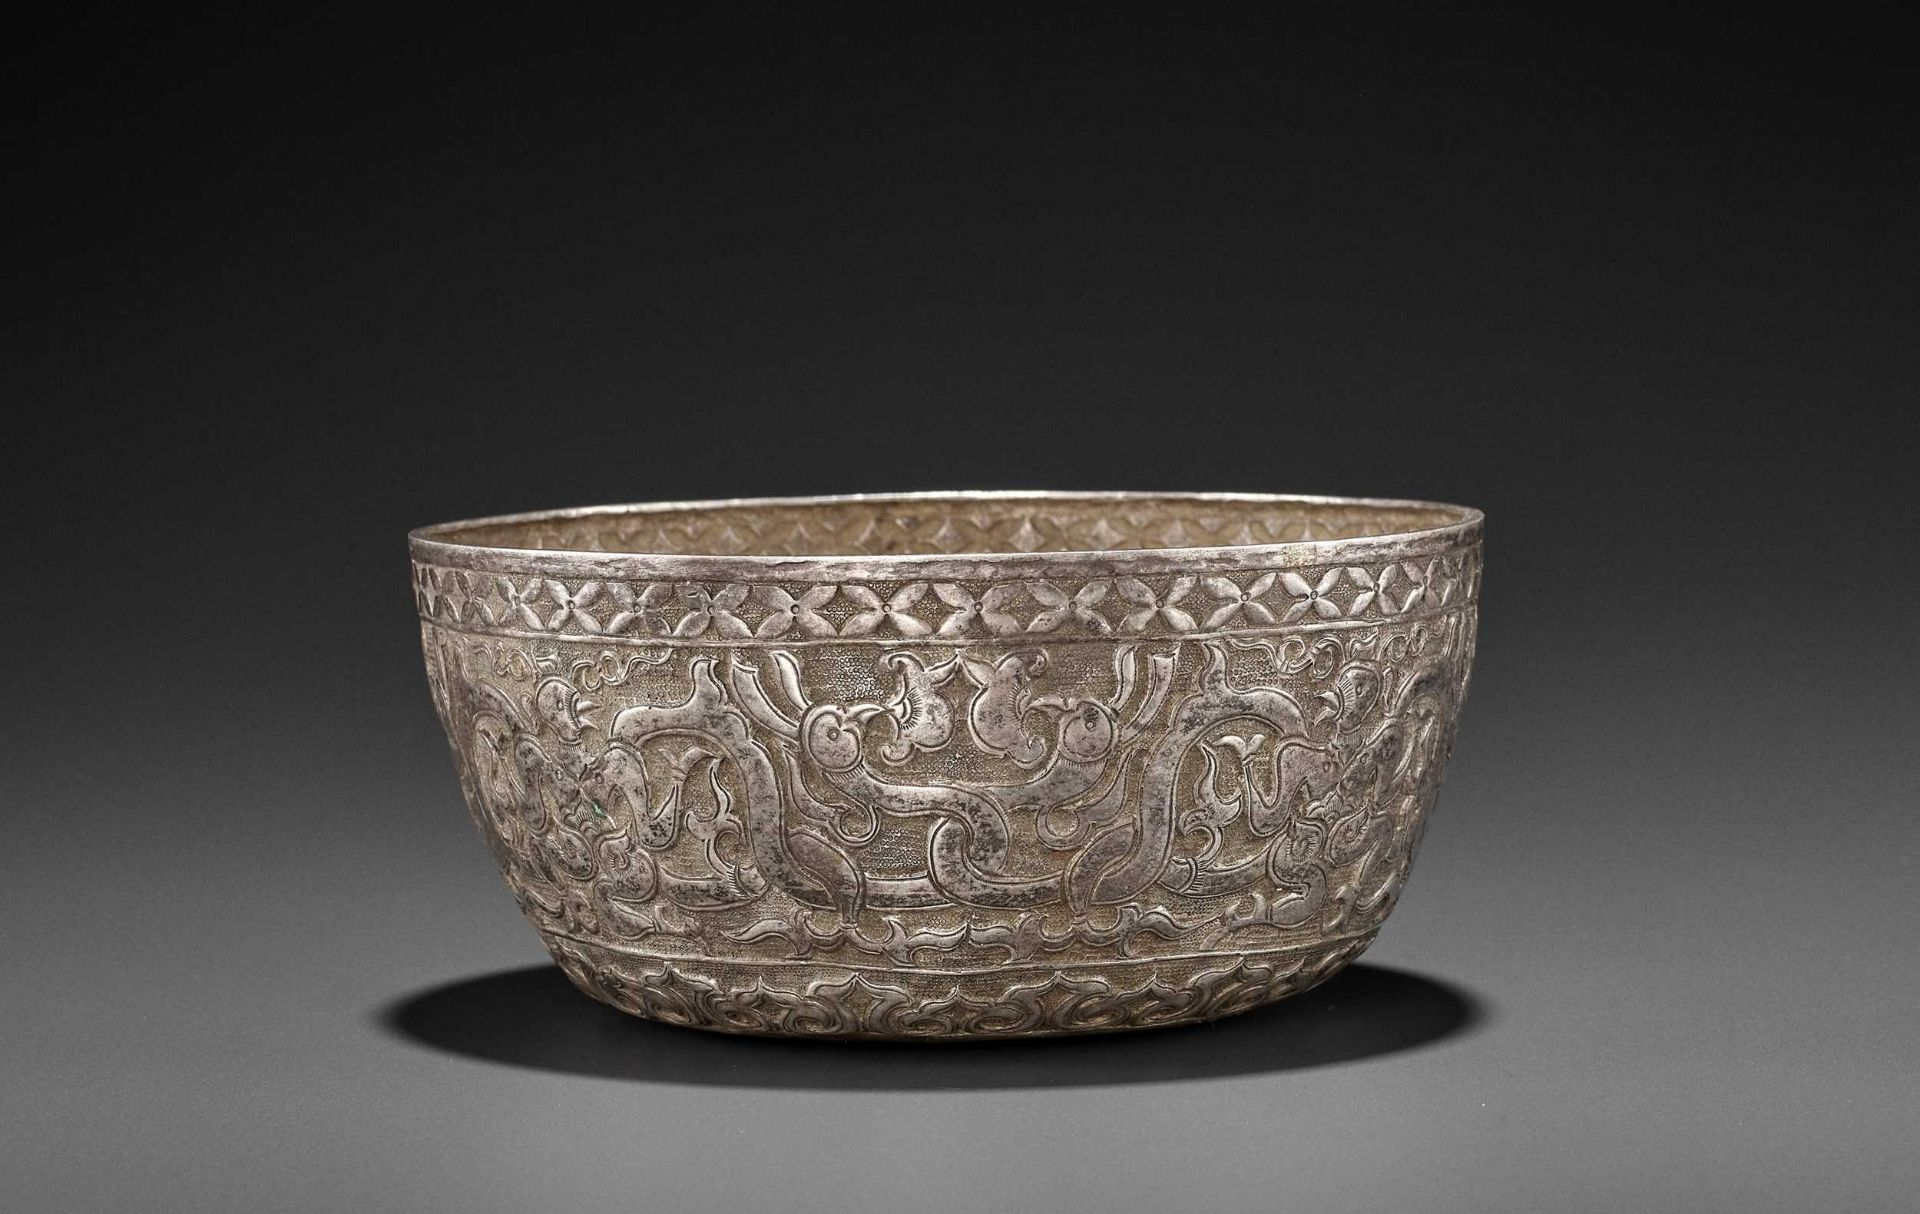 A VERY RARE AND FINE CHAM SILVER REPOUSSÉ BOWL WITH GARUDAS AND PHOENIXES